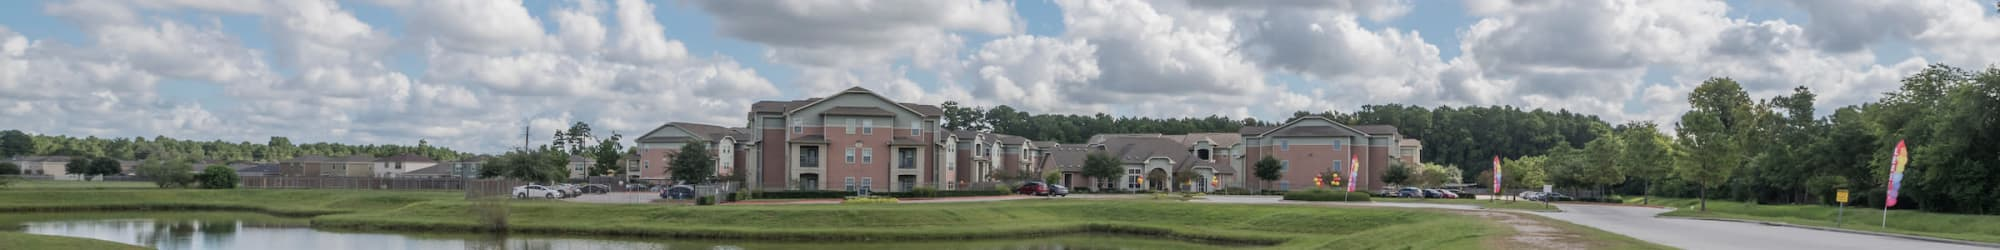 Apply to Cambria Cove Apartments in Houston, Texas